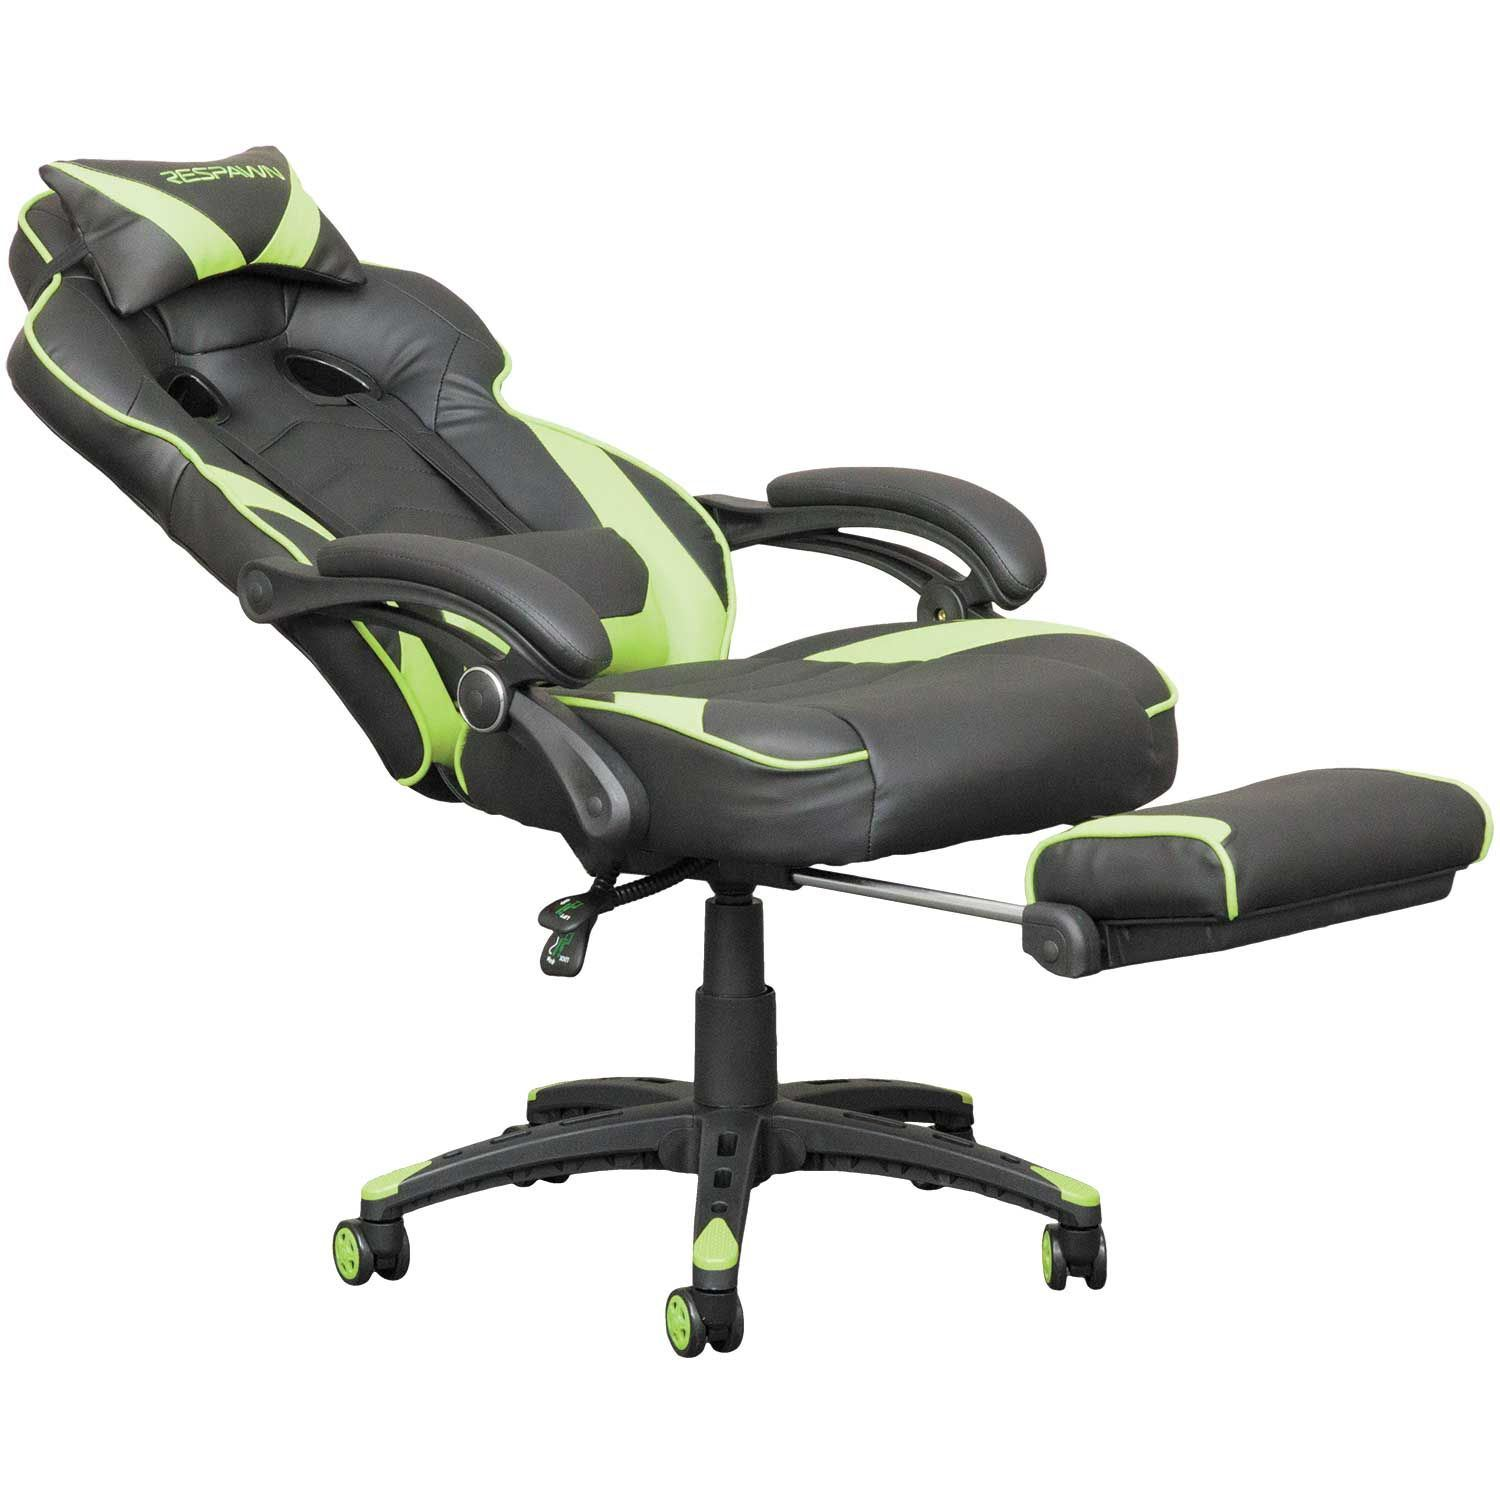 Respawn Reclining Gaming Chair Rsp 110 Grn Ofm